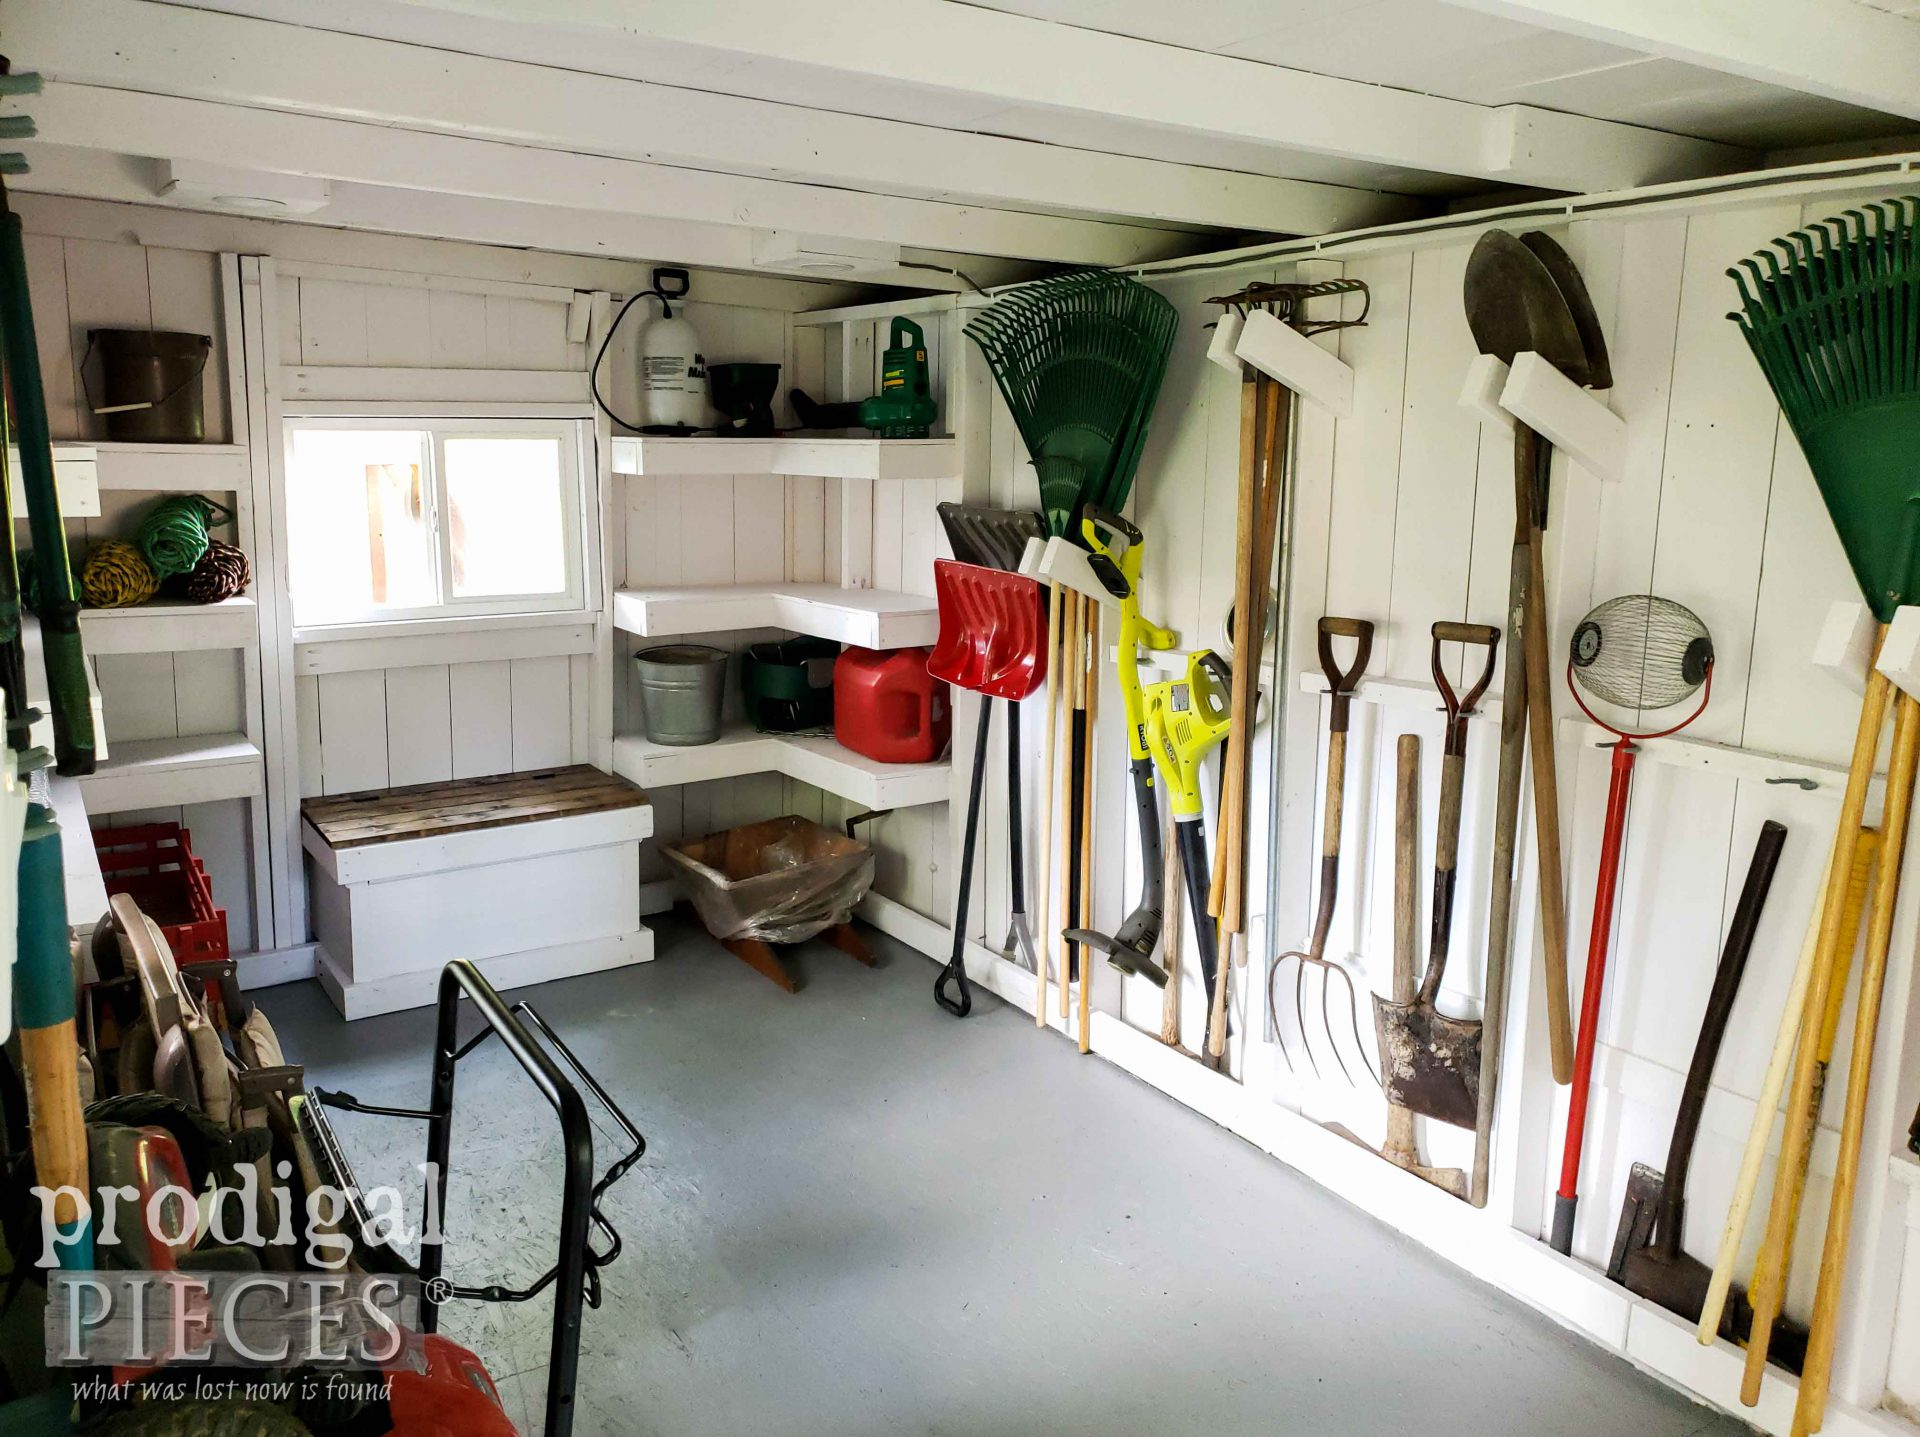 Inside Garden Shed after Remodel by Prodigal Pieces | prodigalpieces.com #prodigalpieces #diy #home #garden